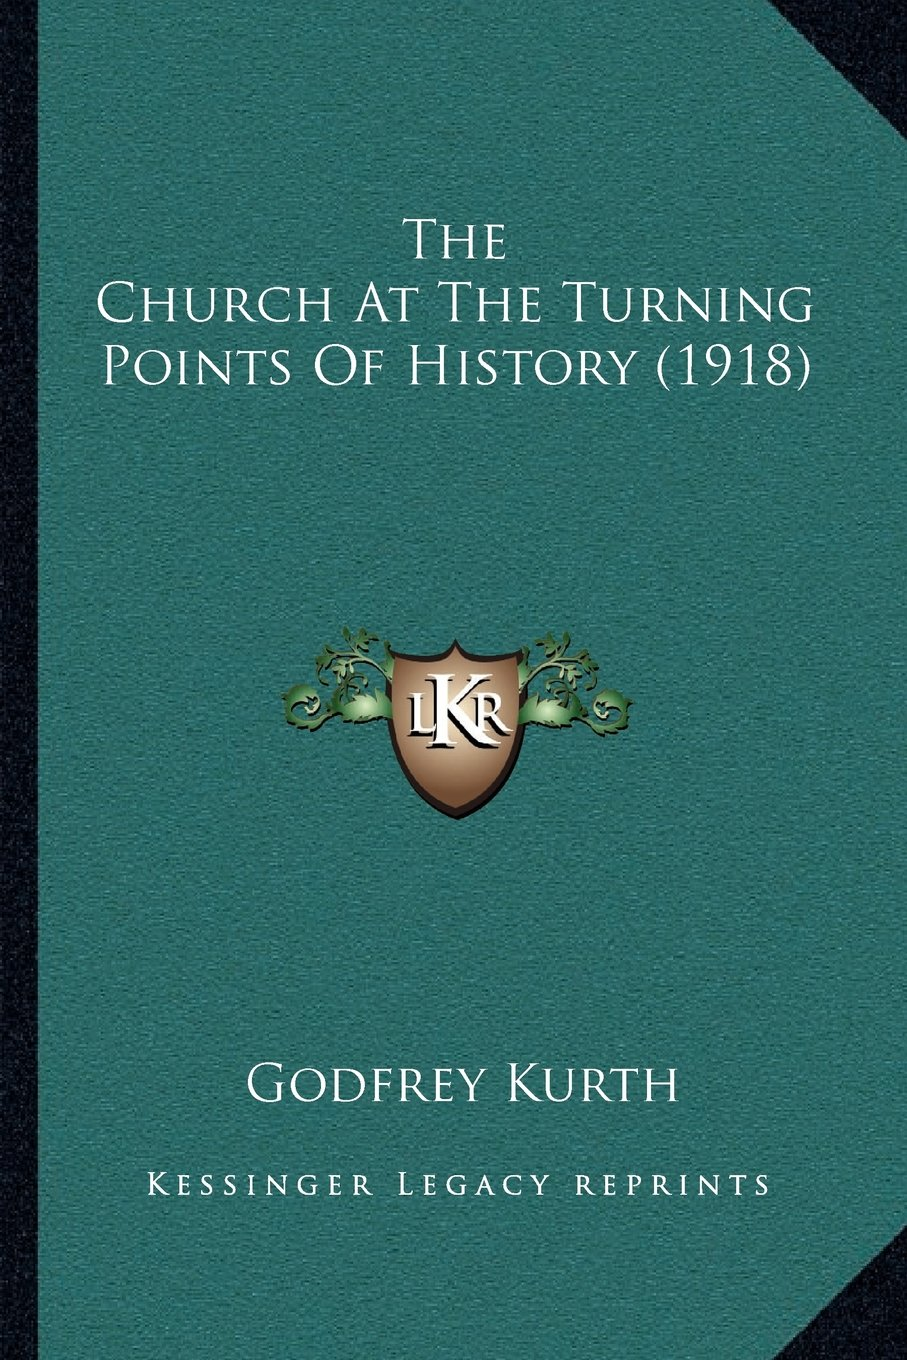 Download The Church At The Turning Points Of History (1918) ebook